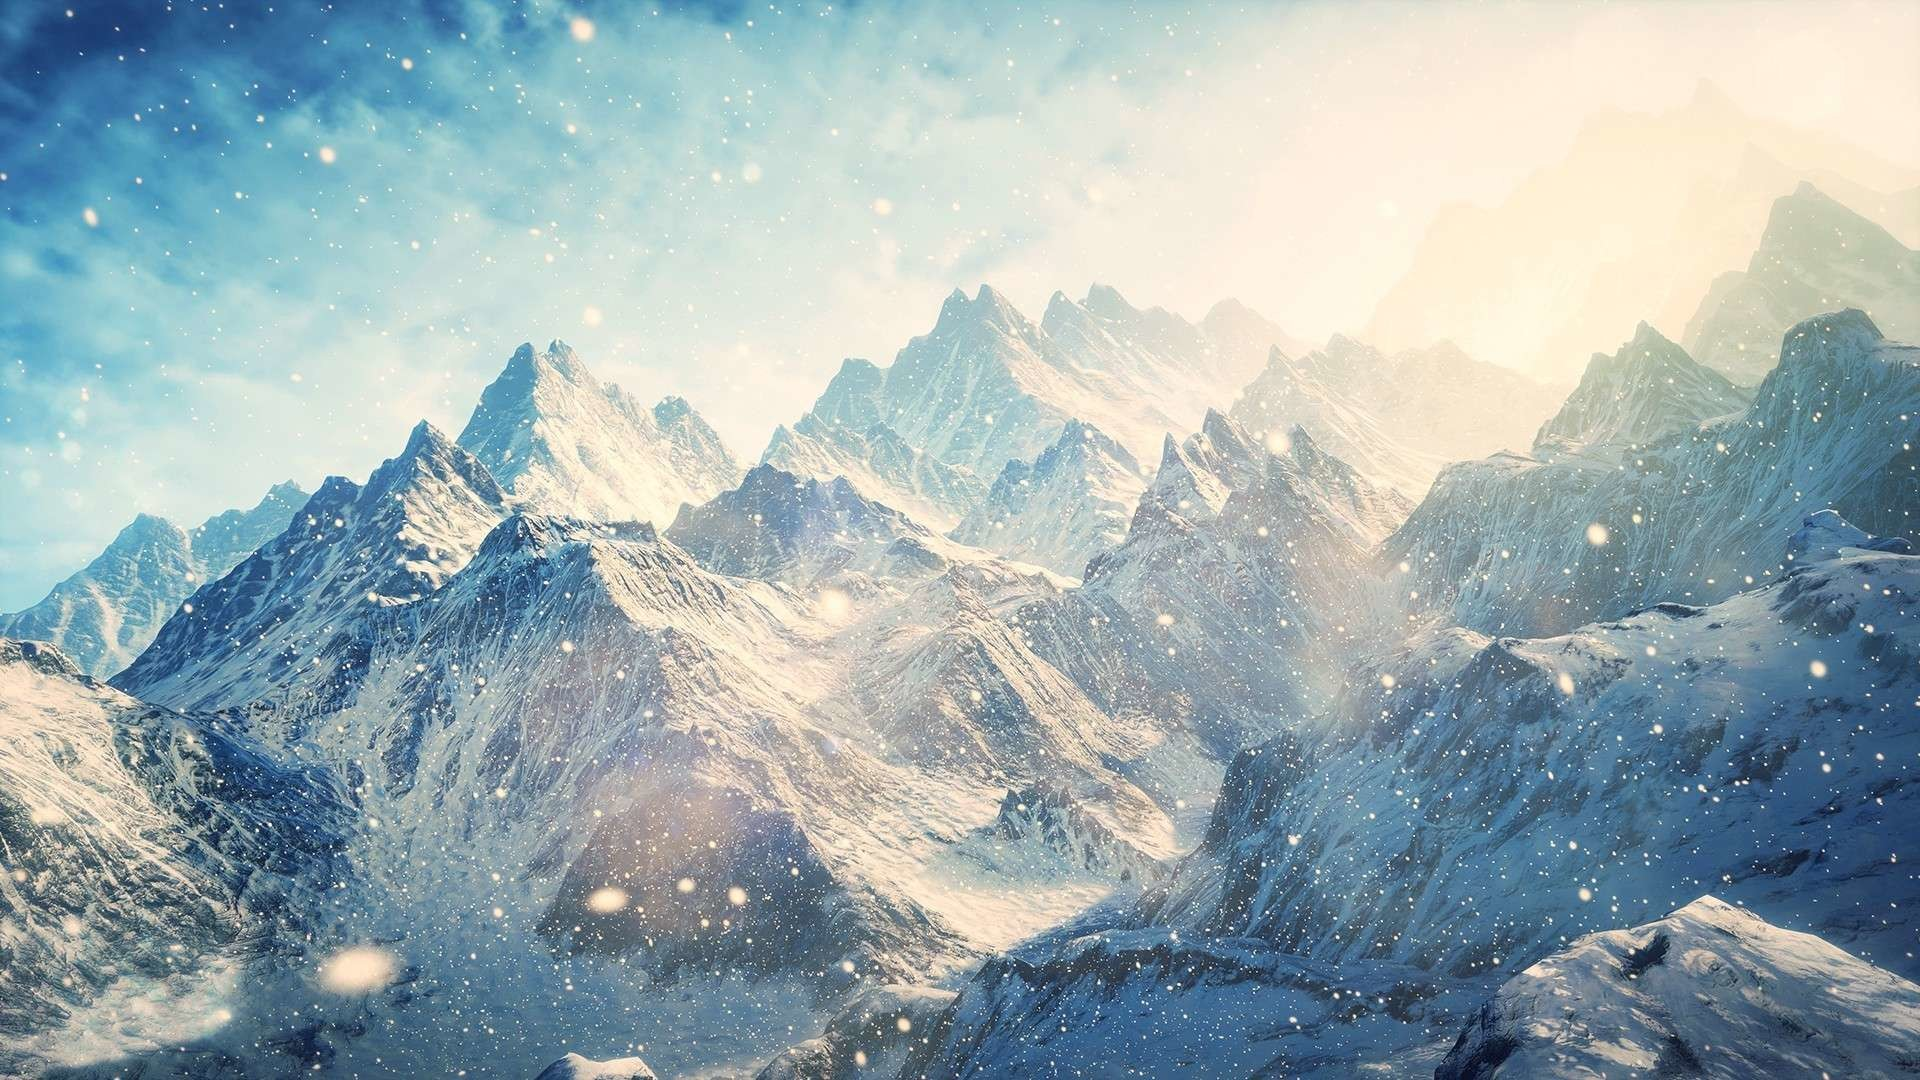 Res: 1920x1080, Snowy Wallpapers in Best  px Resolutions